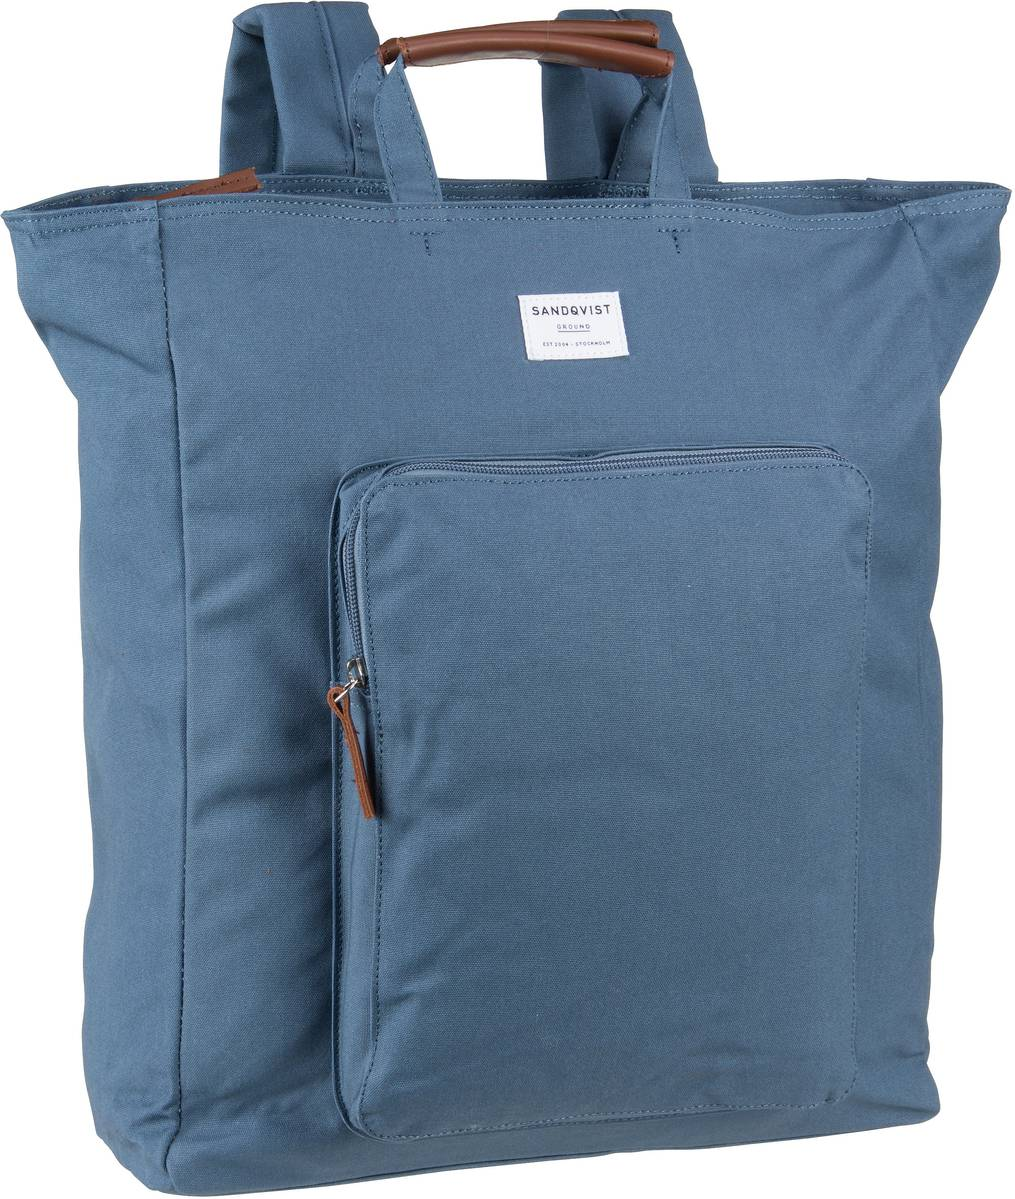 Laptoprucksack Sasha Totepack Dusty Blue (19 Liter)